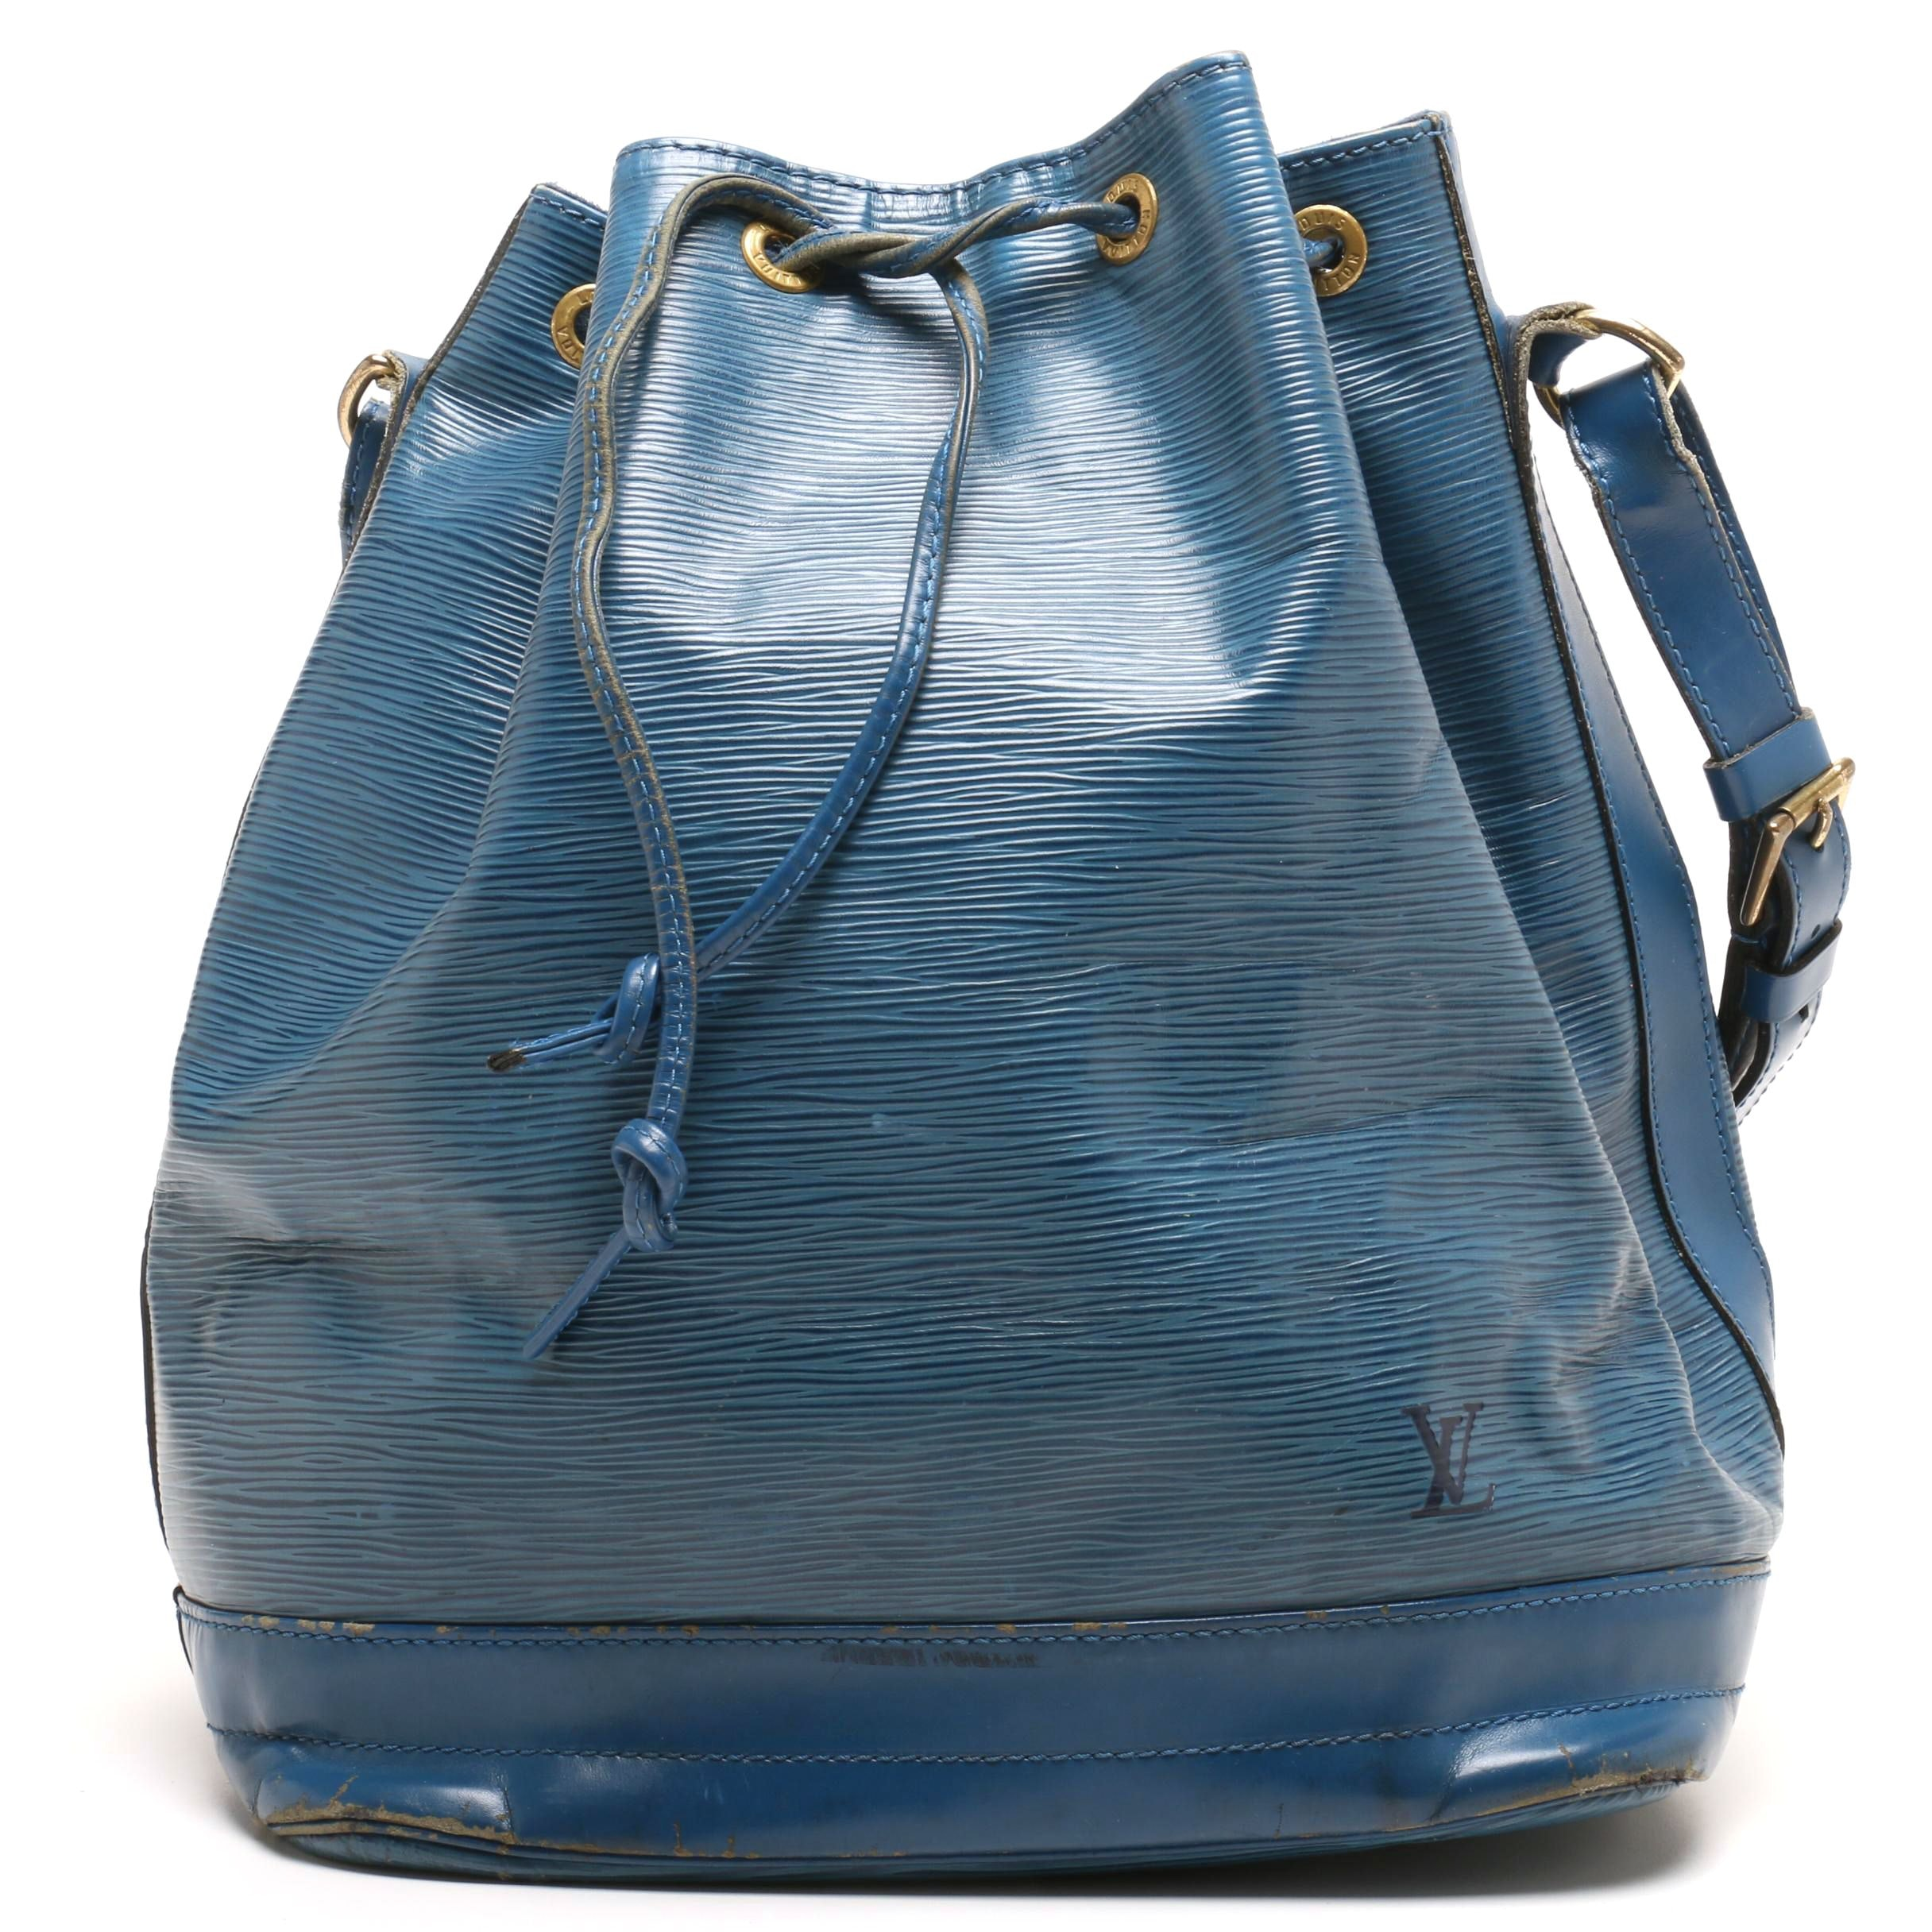 Louis Vuitton Paris Blue Epi Leather Noé Shoulder Bag